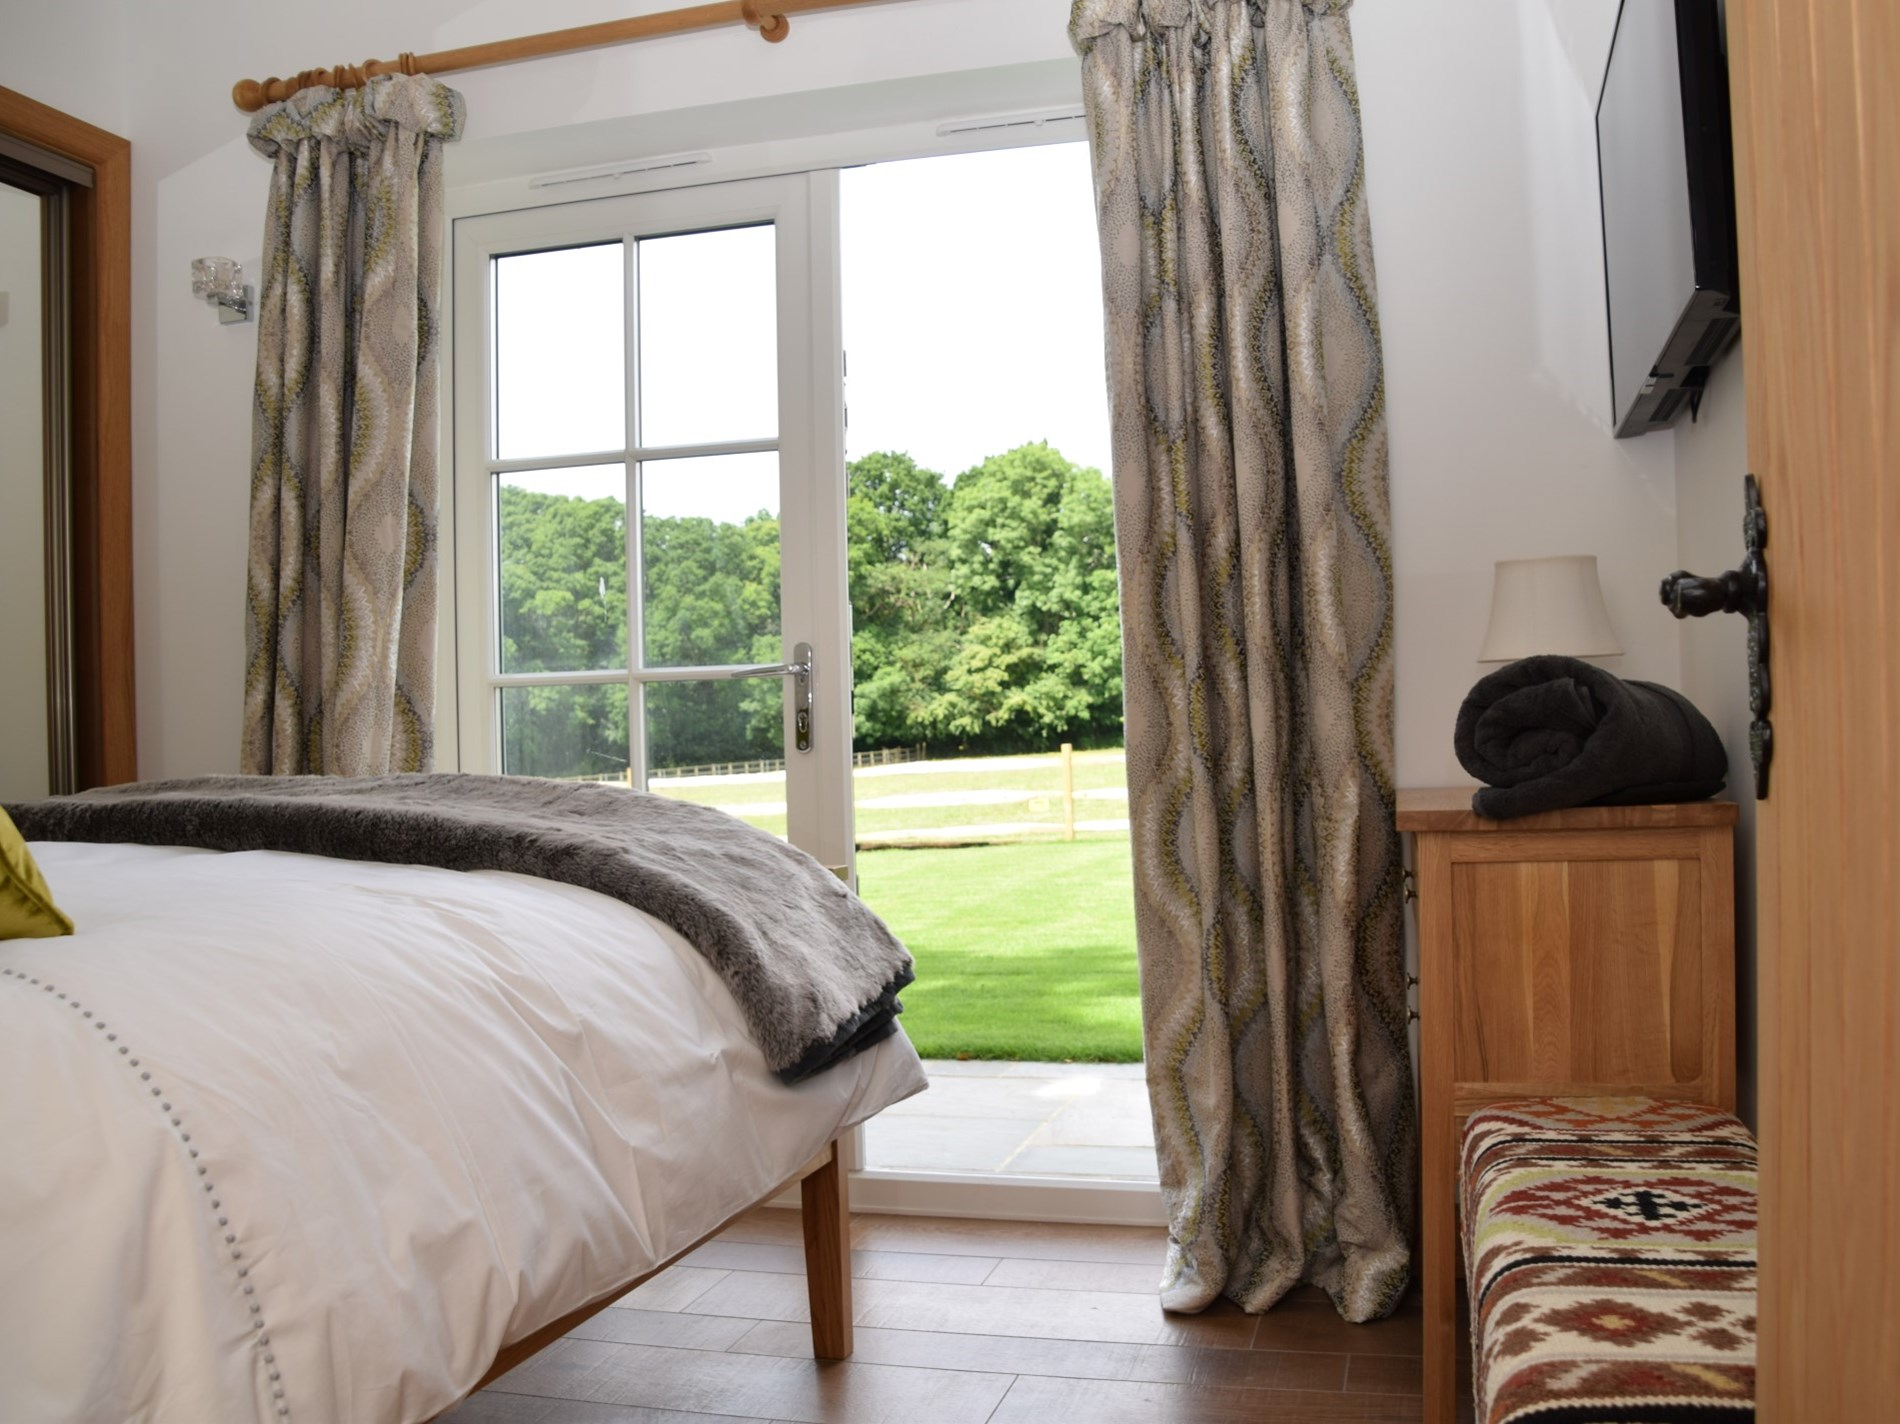 Bedroom with doors leading to lawn area